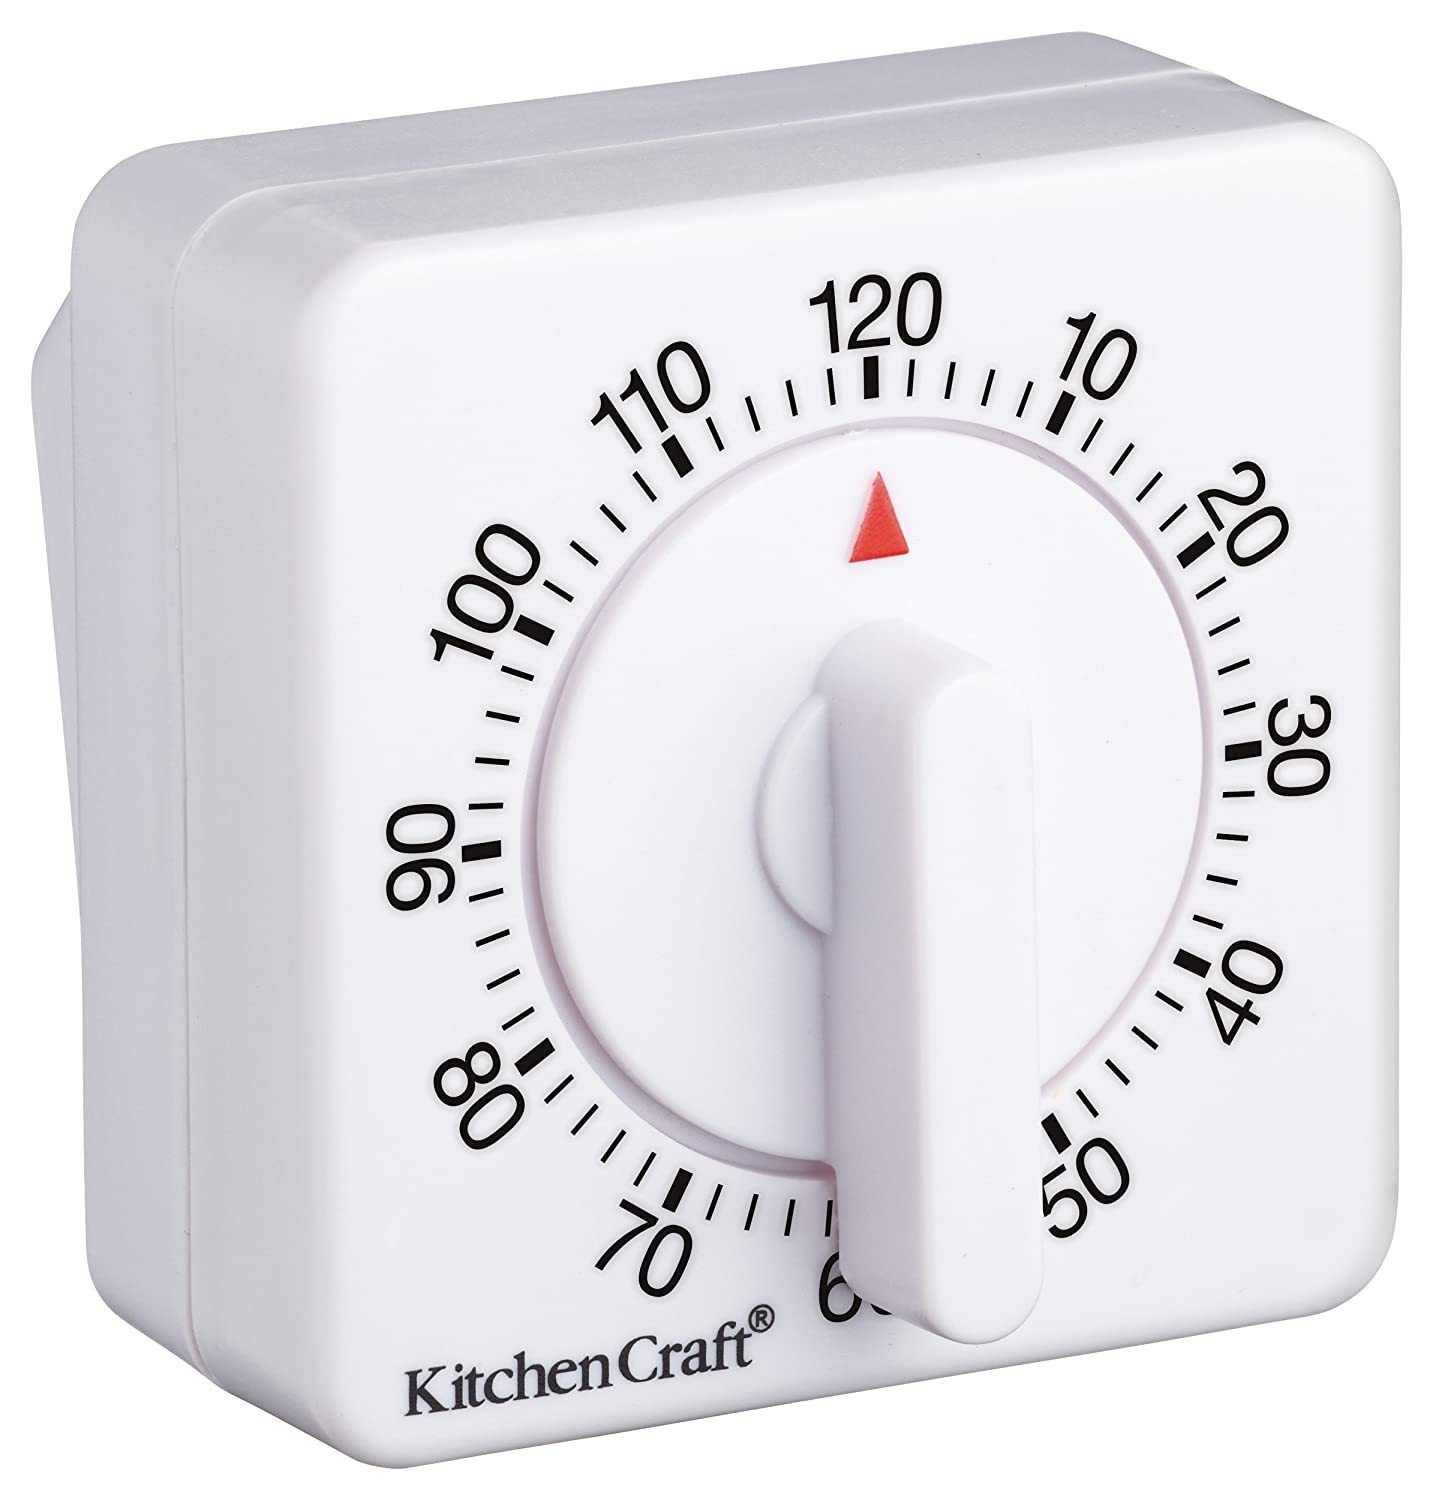 Amazon.com: Deluxe Half Round Wind-up 120 Minute Timer: Kitchen & Dining